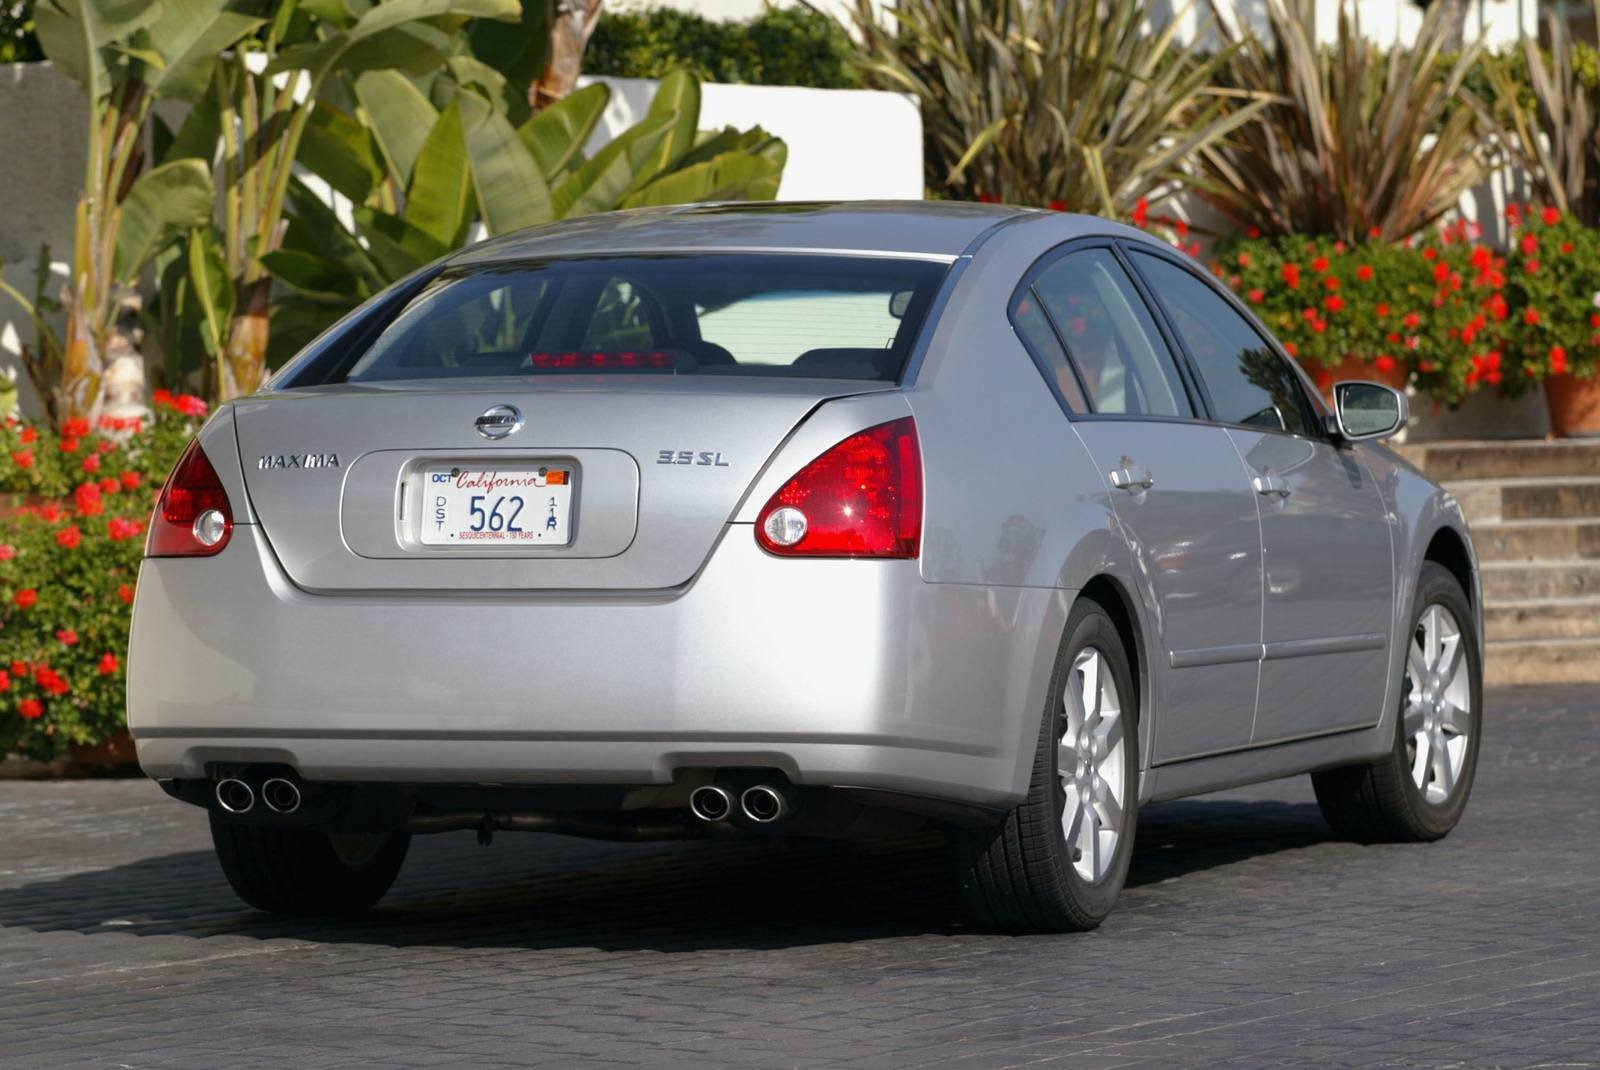 2006 nissan maxima se picture 41247 car review top speed. Black Bedroom Furniture Sets. Home Design Ideas